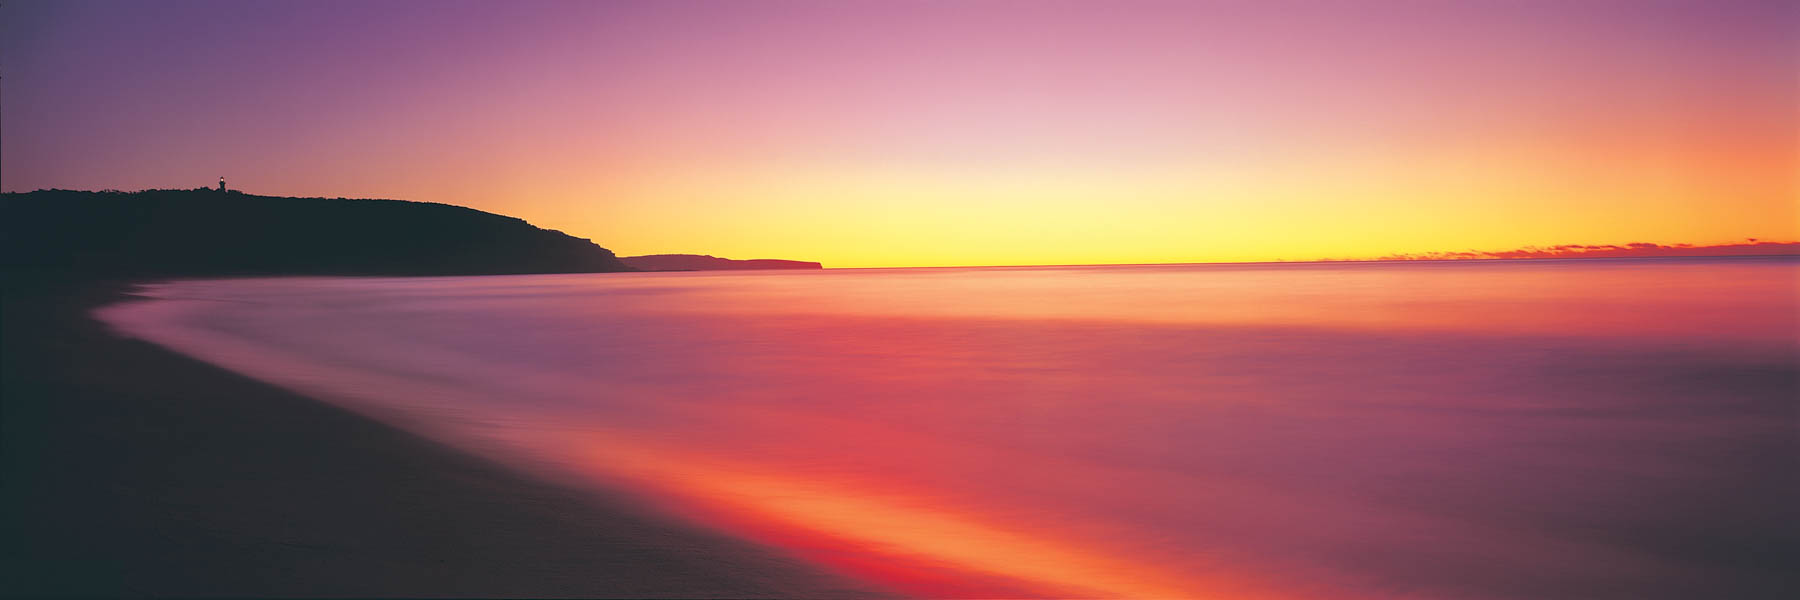 Red sunrise over Barrenjoey lighthouse, Palm Beach, Sydney, NSW, Australia.